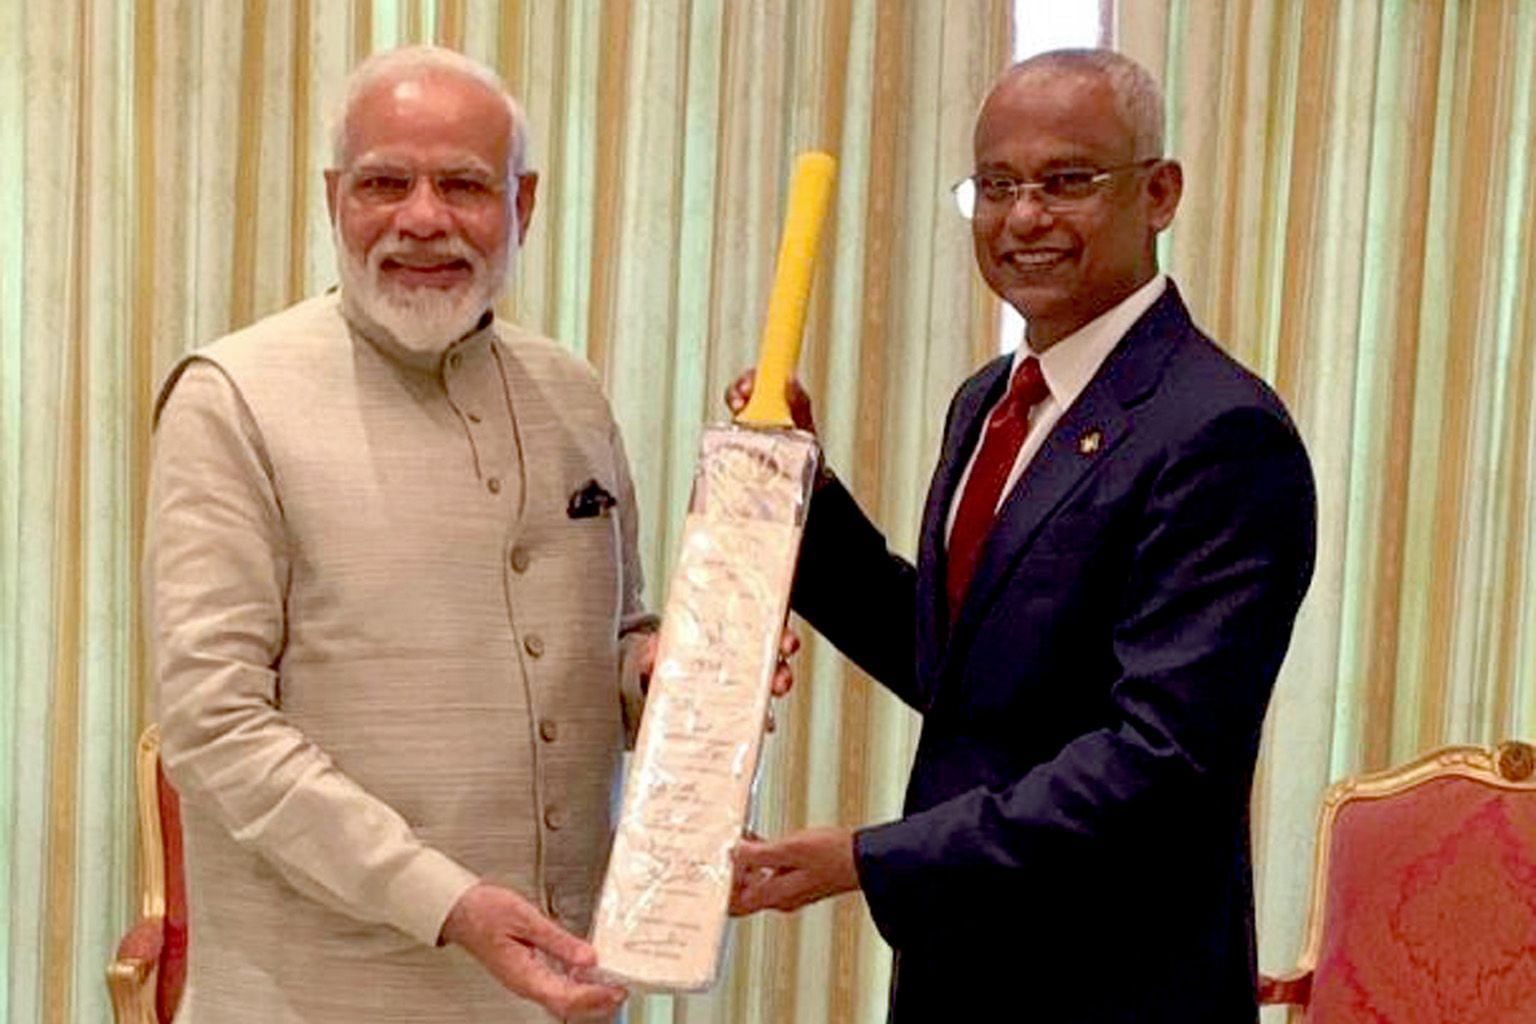 During his recent visit to the Maldives, Indian Prime Minister Narendra Modi (far left) gifted a cricket bat autographed by the Indian cricket team to Maldivian President Ibrahim Mohamed Solih.